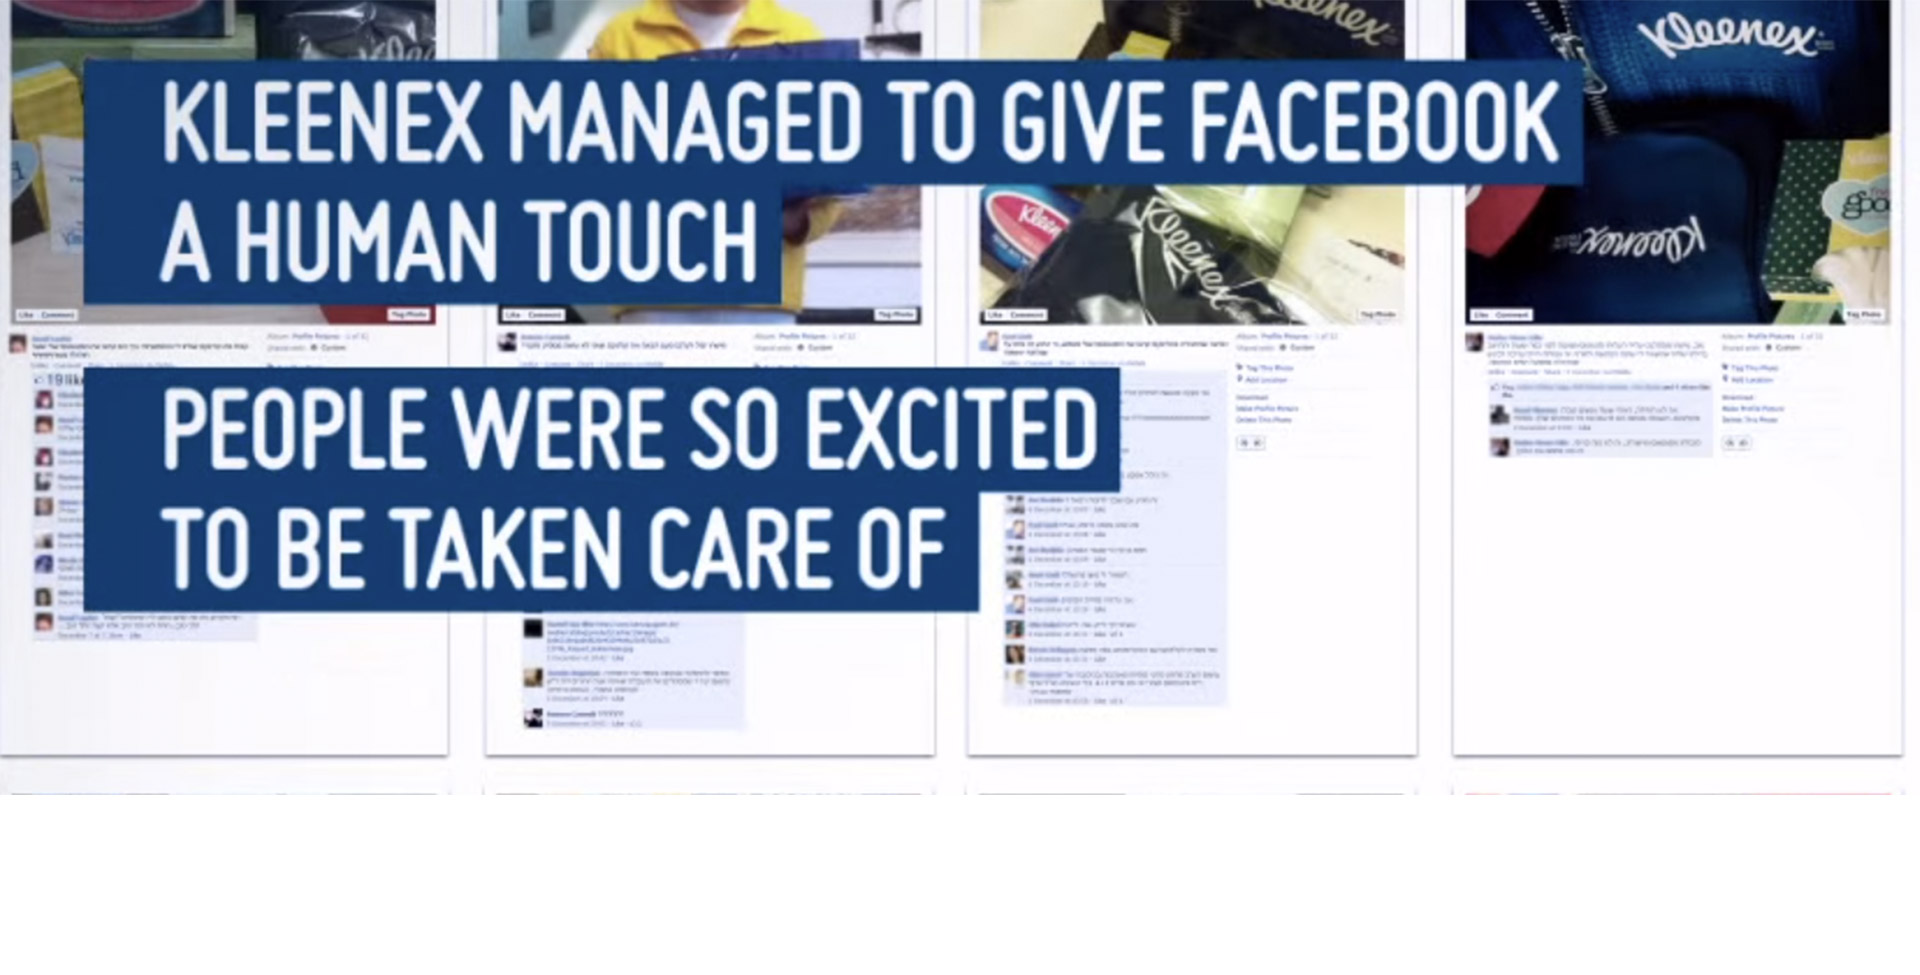 kleenex managed to give facebook a human touch